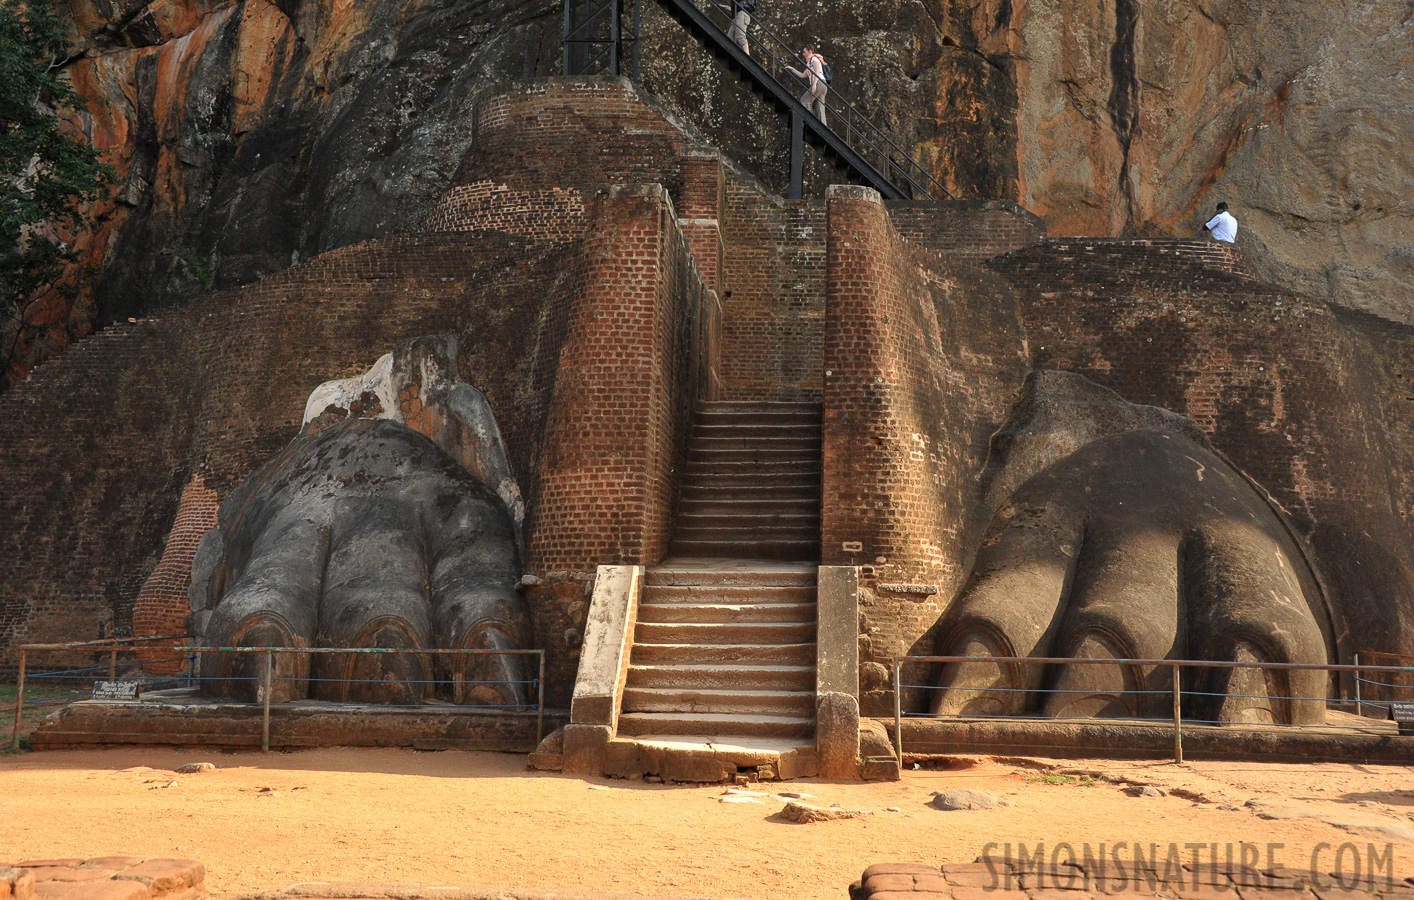 Sigiriya [42 mm, 1/500 sec at f / 10, ISO 1600]